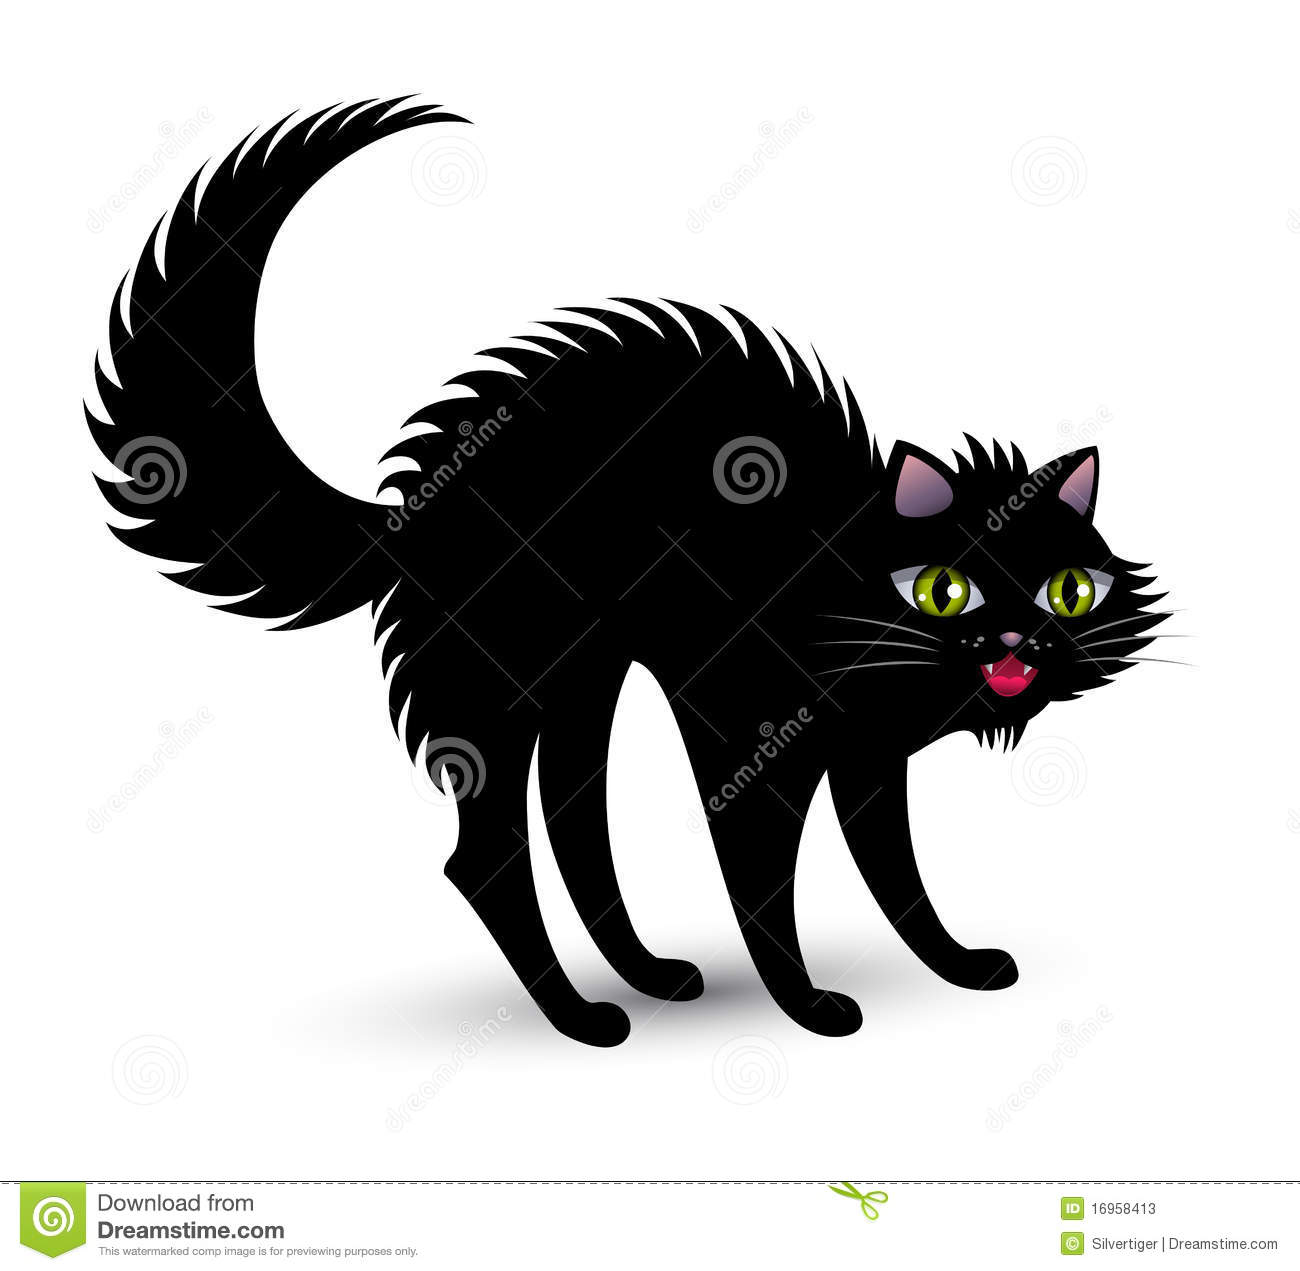 Scared Cat Clipart Scary black cat